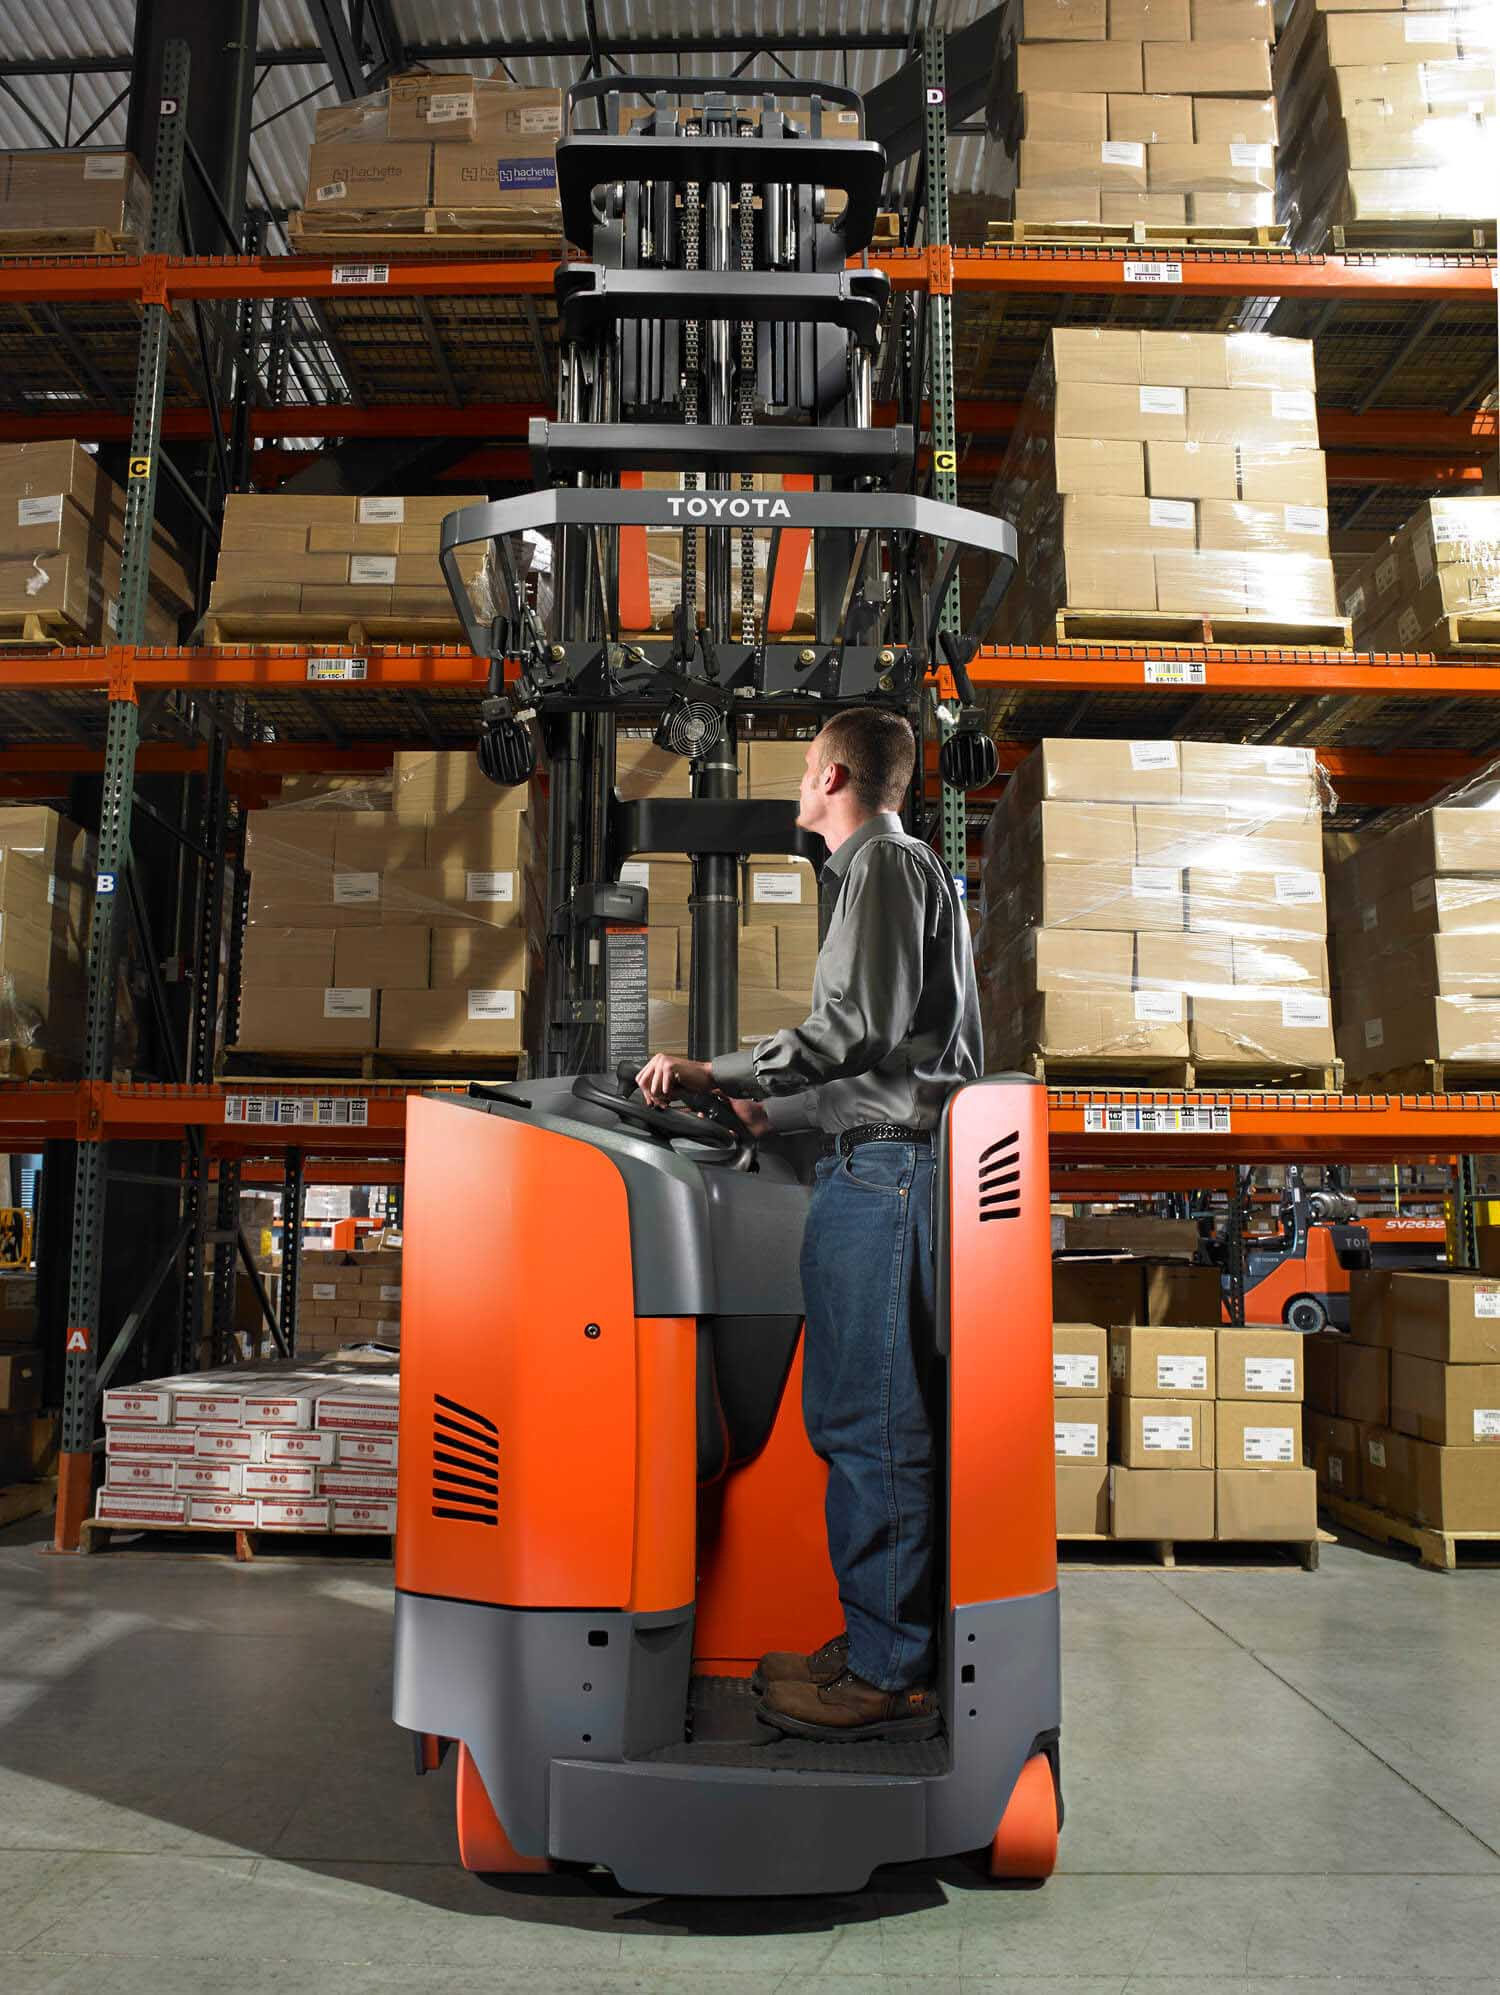 Toyota Electric Reach Truck Mast View